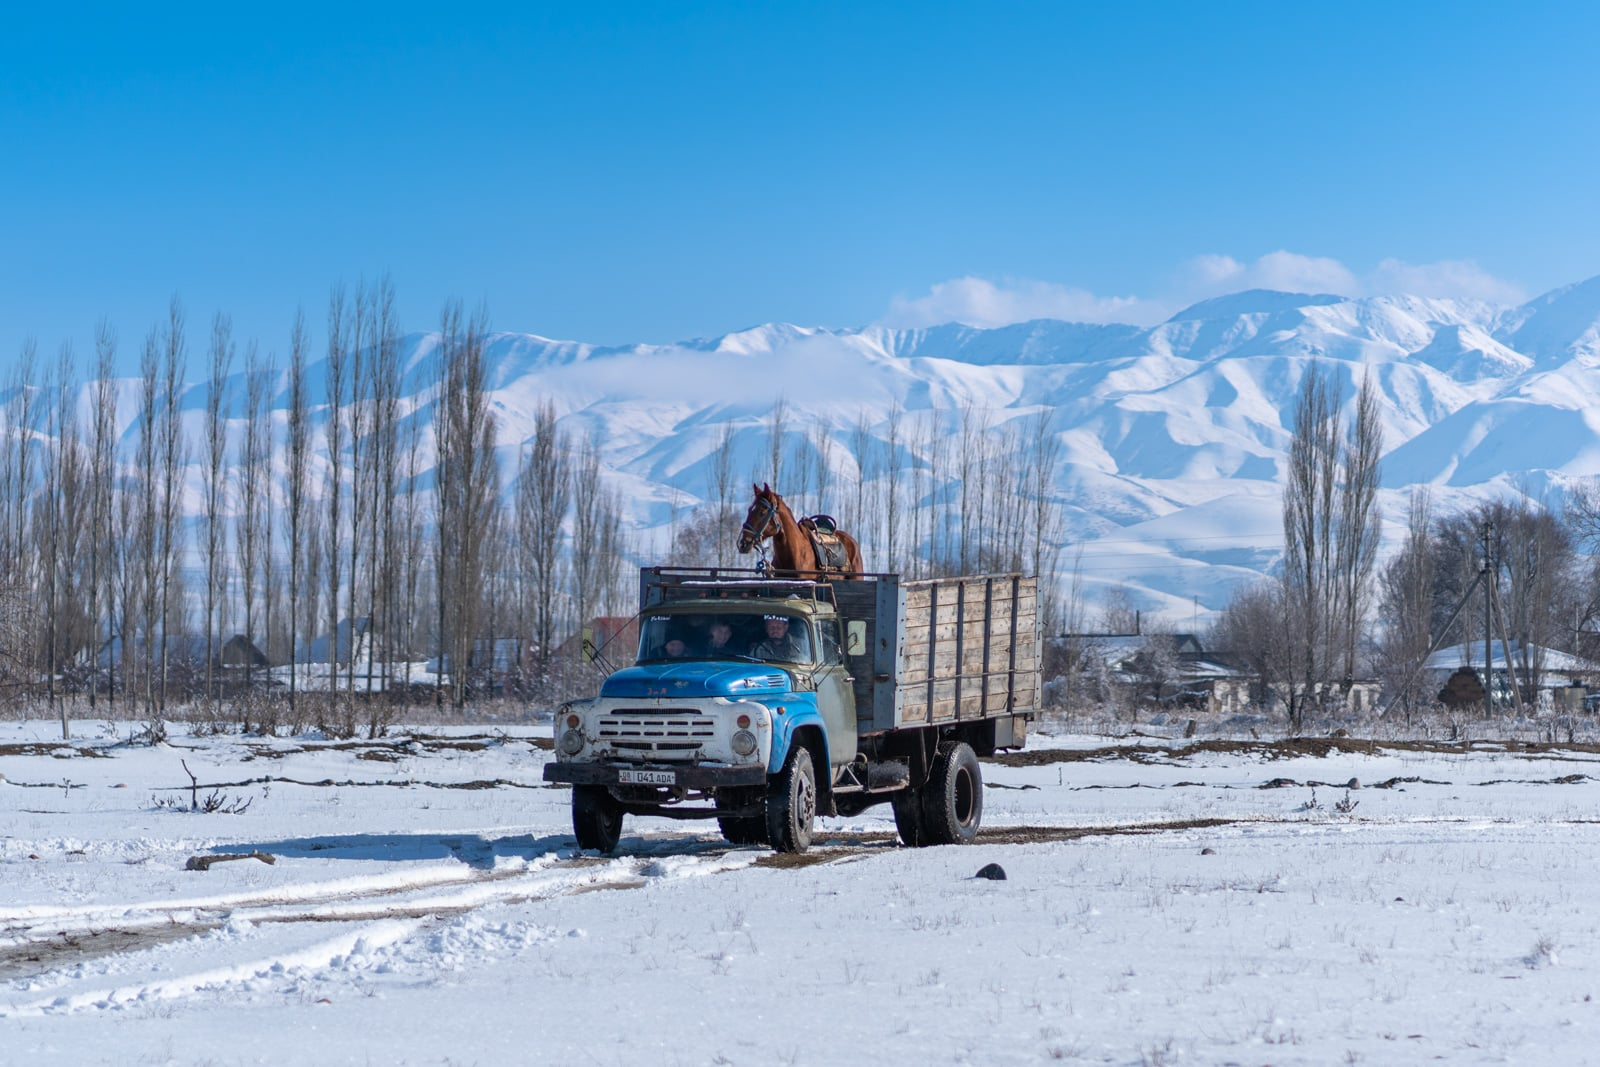 Horse transported in a truck in Kyrgyzstan